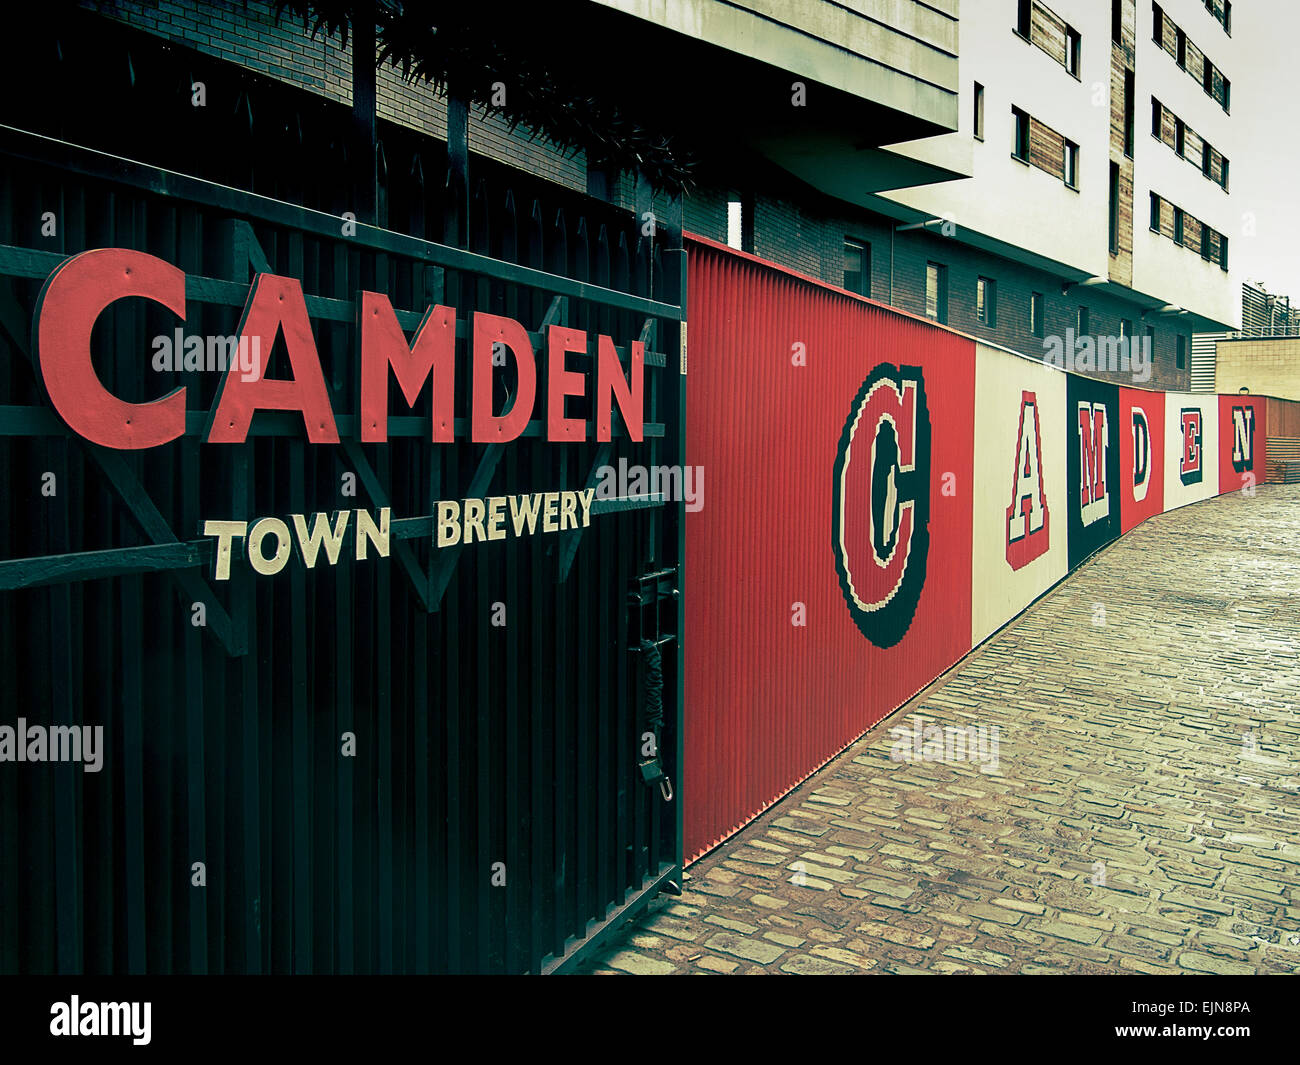 Camden Town Brewery HQ London UK - Stock Image